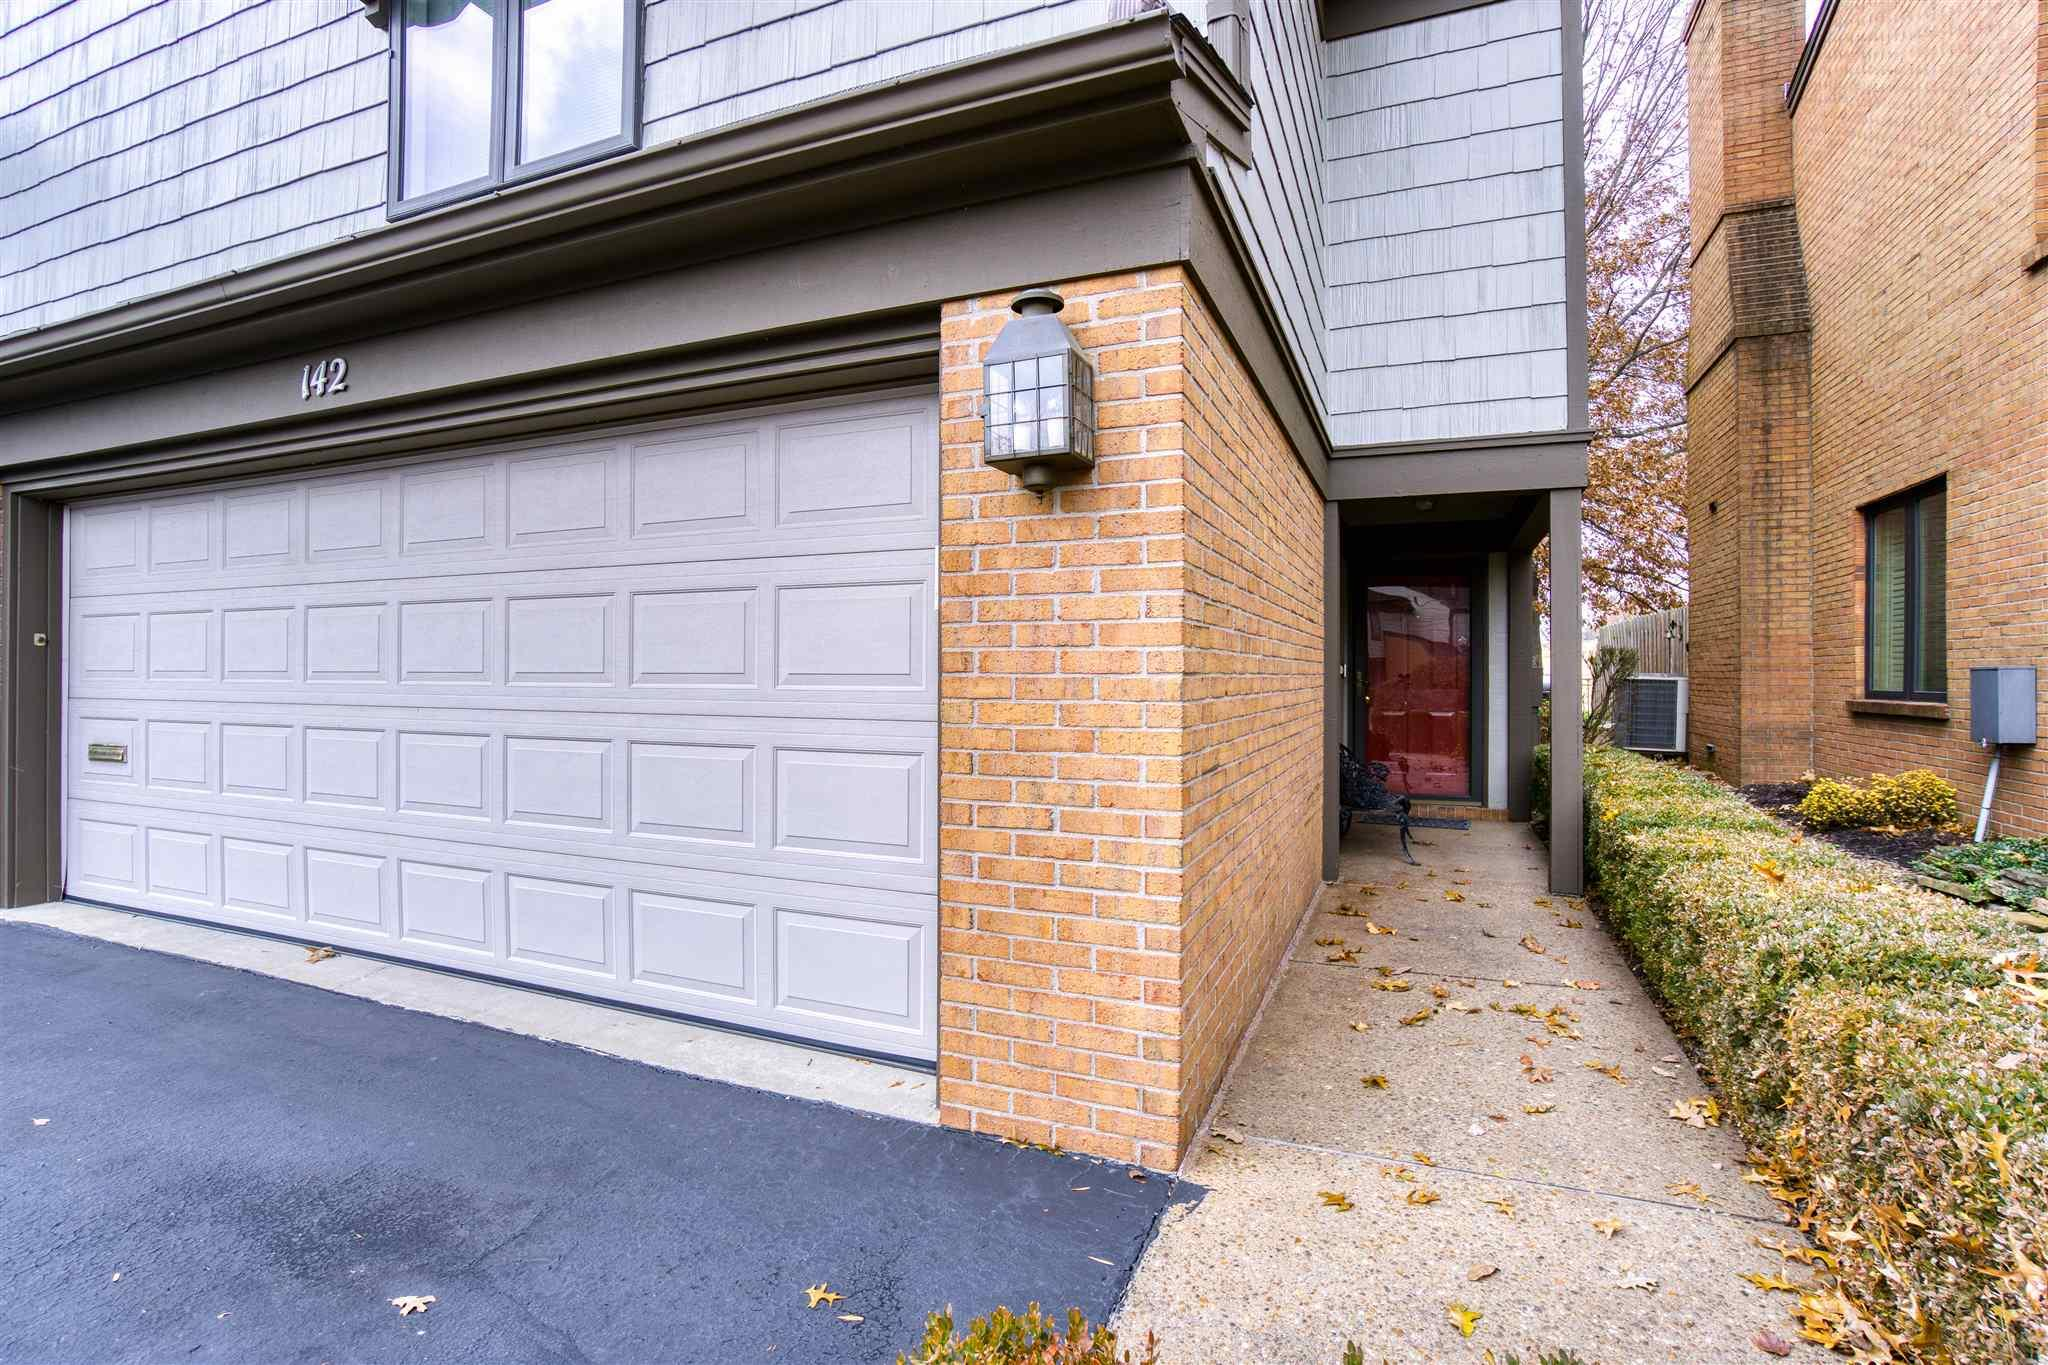 Beautiful second floor condo overlooking Evansville Country Club! The front door accesses the stair case that leads upstairs to the condo. At the top of the stairs, you're greeted by a large foyer that features a coat closet and a storage closet. The living room and dining room provide an open concept, access to the balcony overlooking the golf course, built-in bookshelves, and storage closets! The spacious eat-in kitchen has an island with breakfast bar. The laundry is located in the closet off of the breakfast area. The large master suite features a walk-in closet, linen closet, AND two additional closets! Storage. Storage. Storage! The private bath has twin vanities and a tub/shower combination. The second bedroom includes THREE separate walk-in closets! The third bedroom has TWO walk-in closets! You will not run out of storage in this condo! There is another full bath with a walk-in shower. Also features is a two car attached garage.